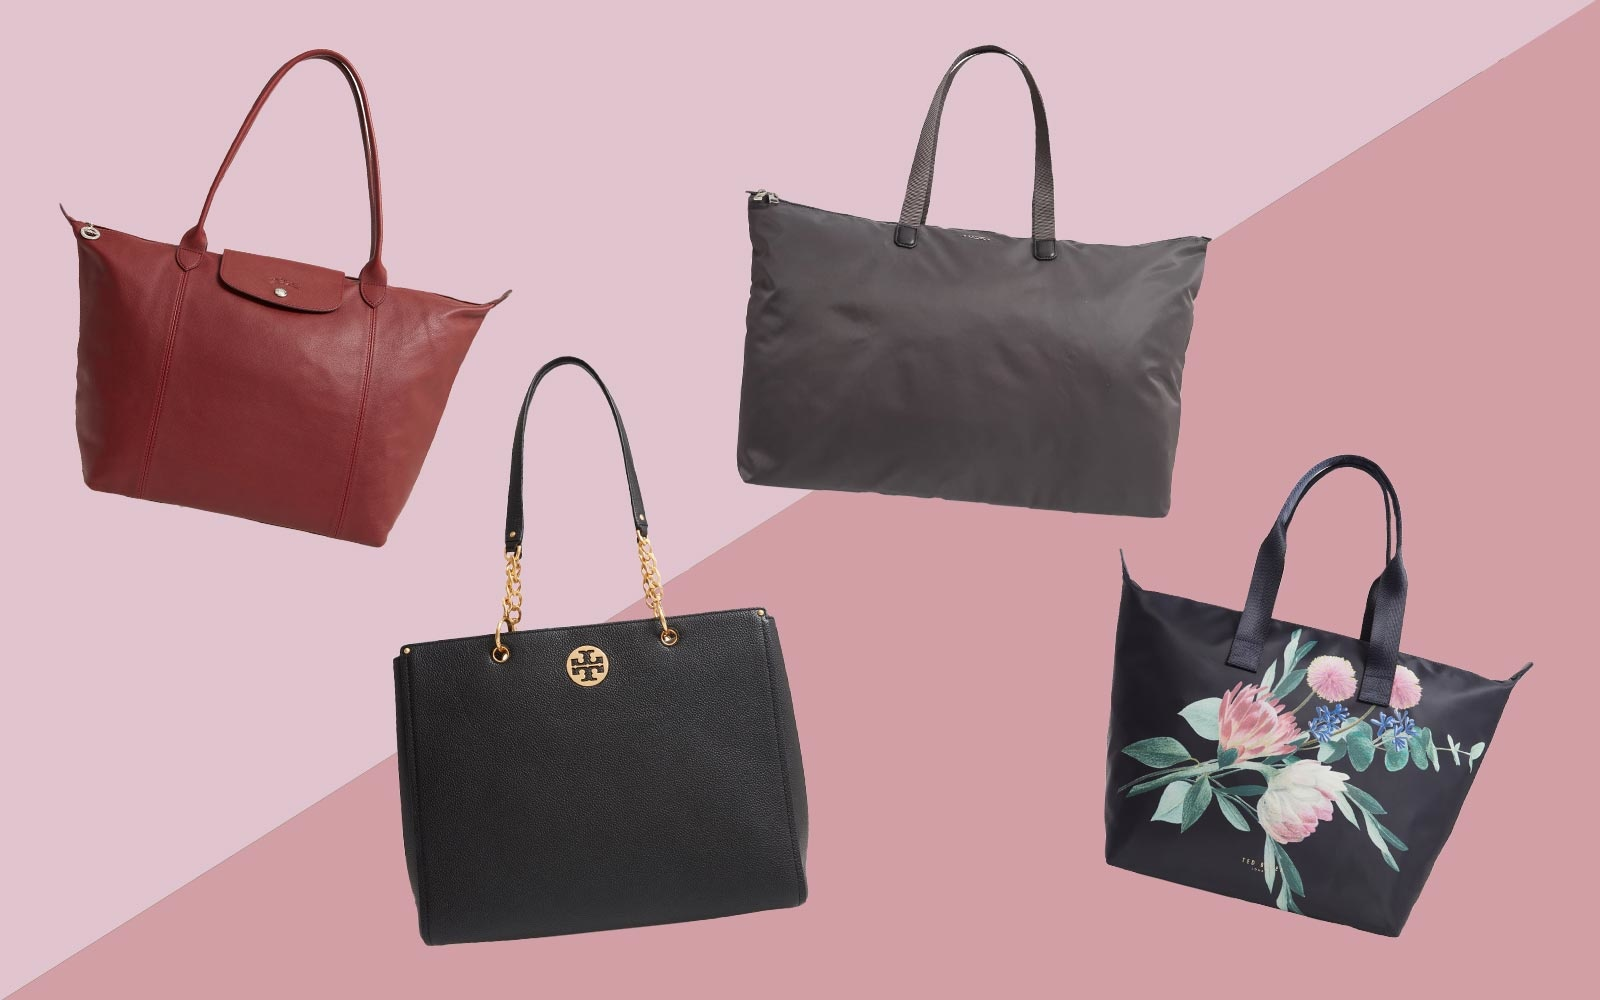 06afaf4a7457 Nordstrom Anniversary Sale: Tote Bag Deals | Travel + Leisure